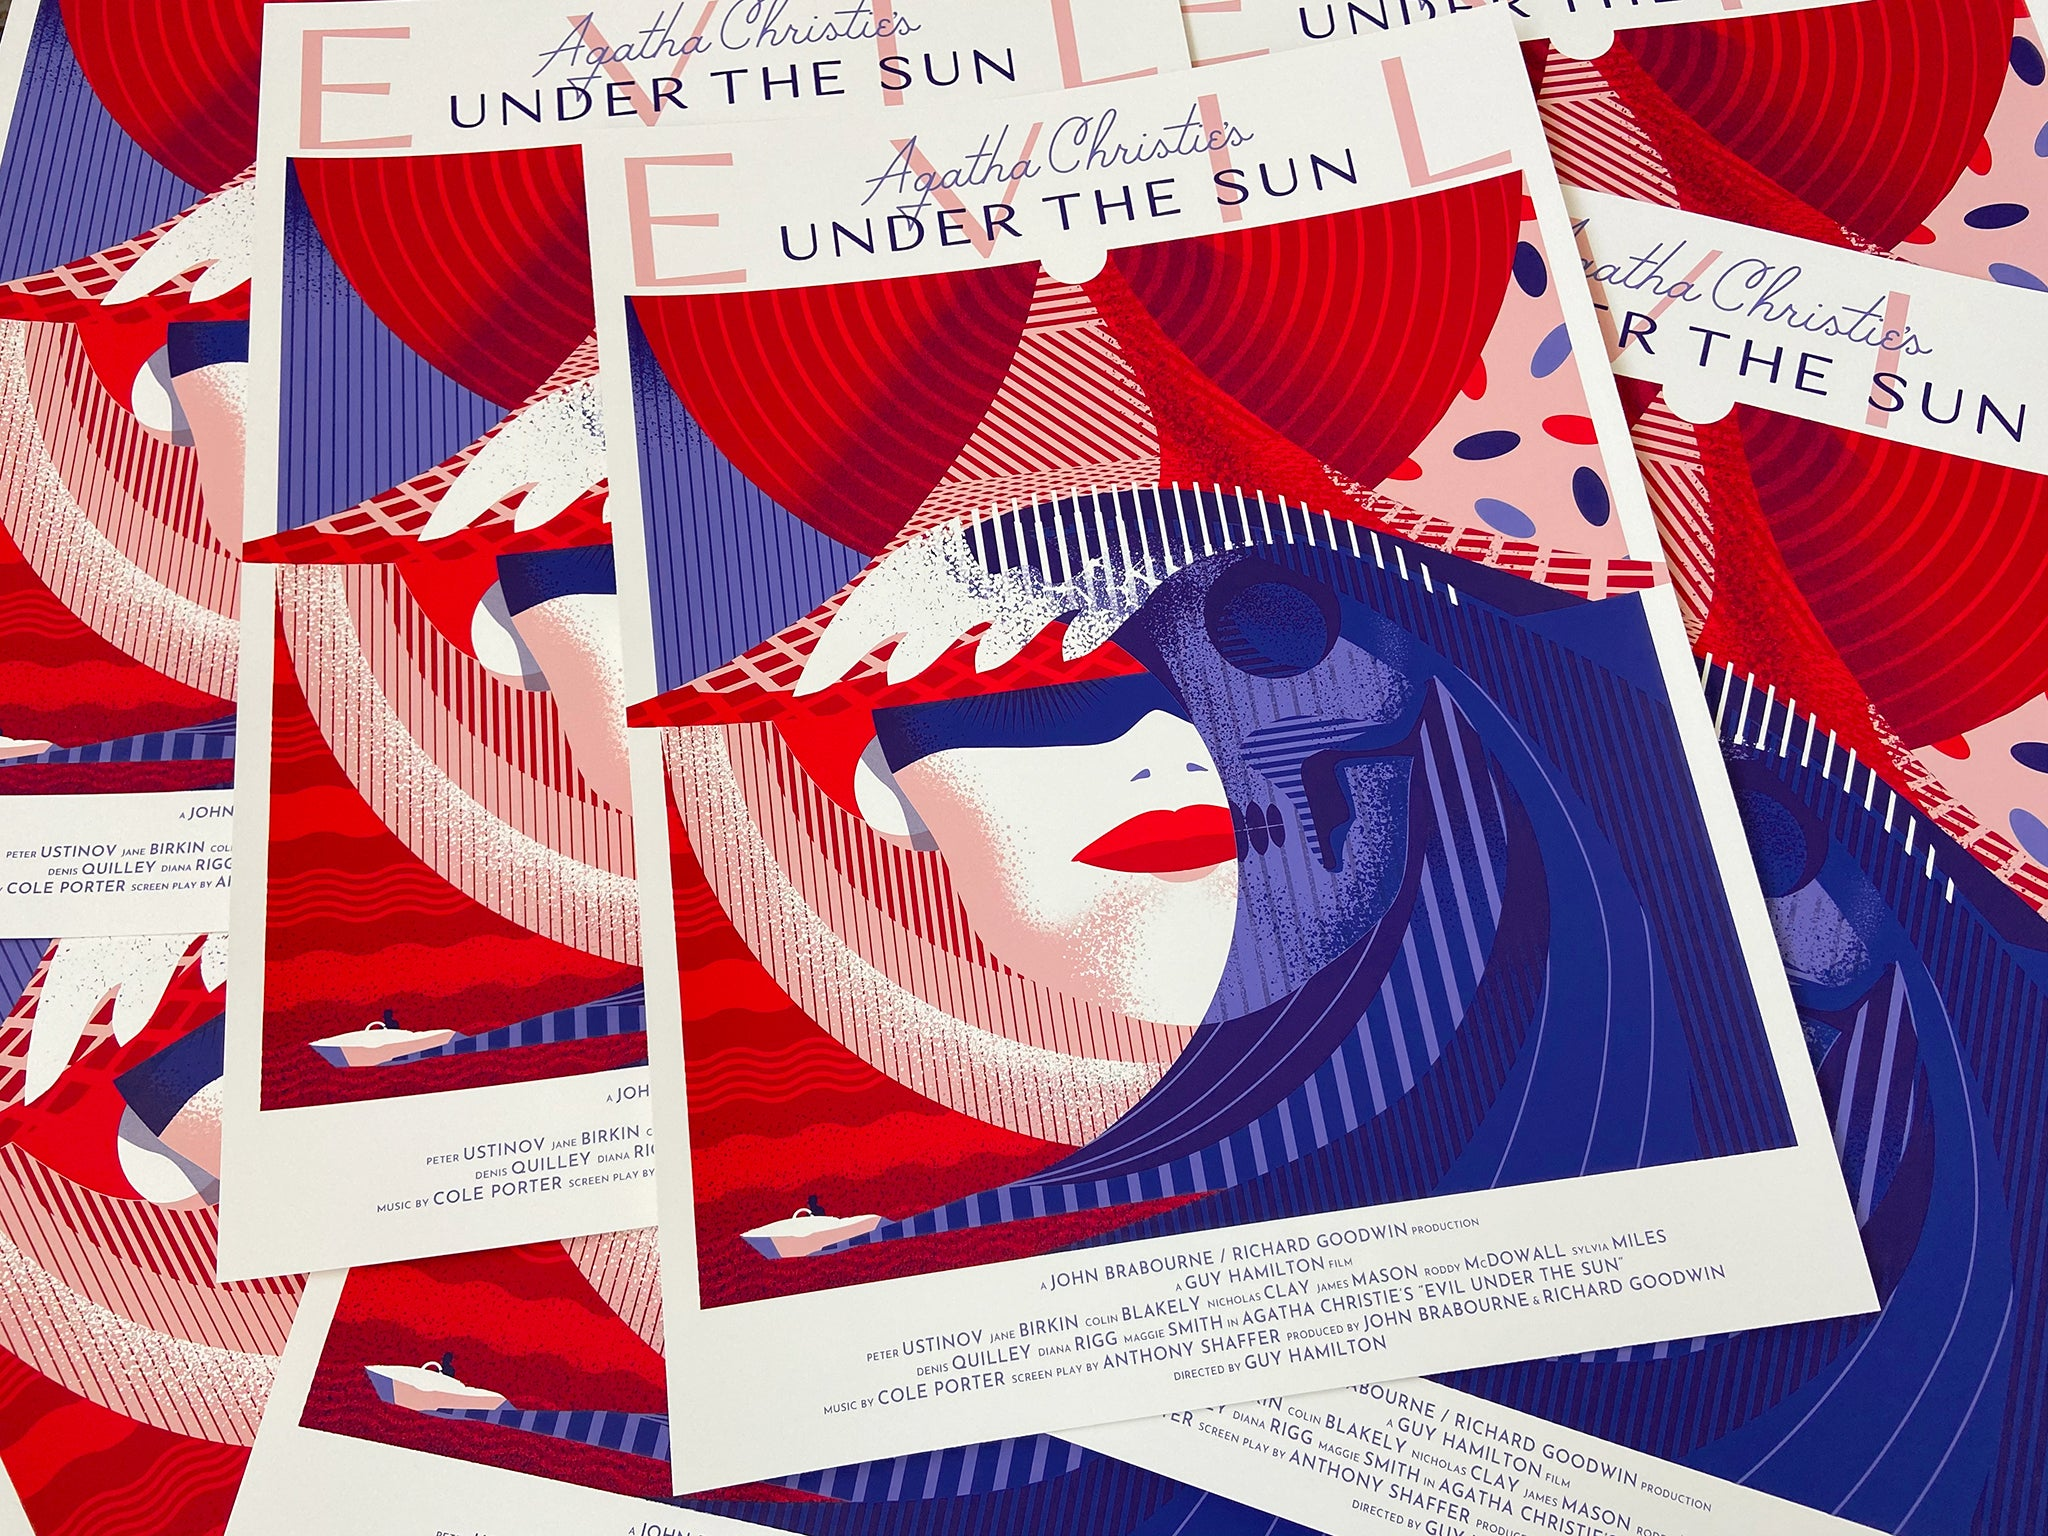 Agatha Christie's Evil Under the Sun edition by WBYK, screen printed by White Duck Editions, commissioned by Black Dragon Press